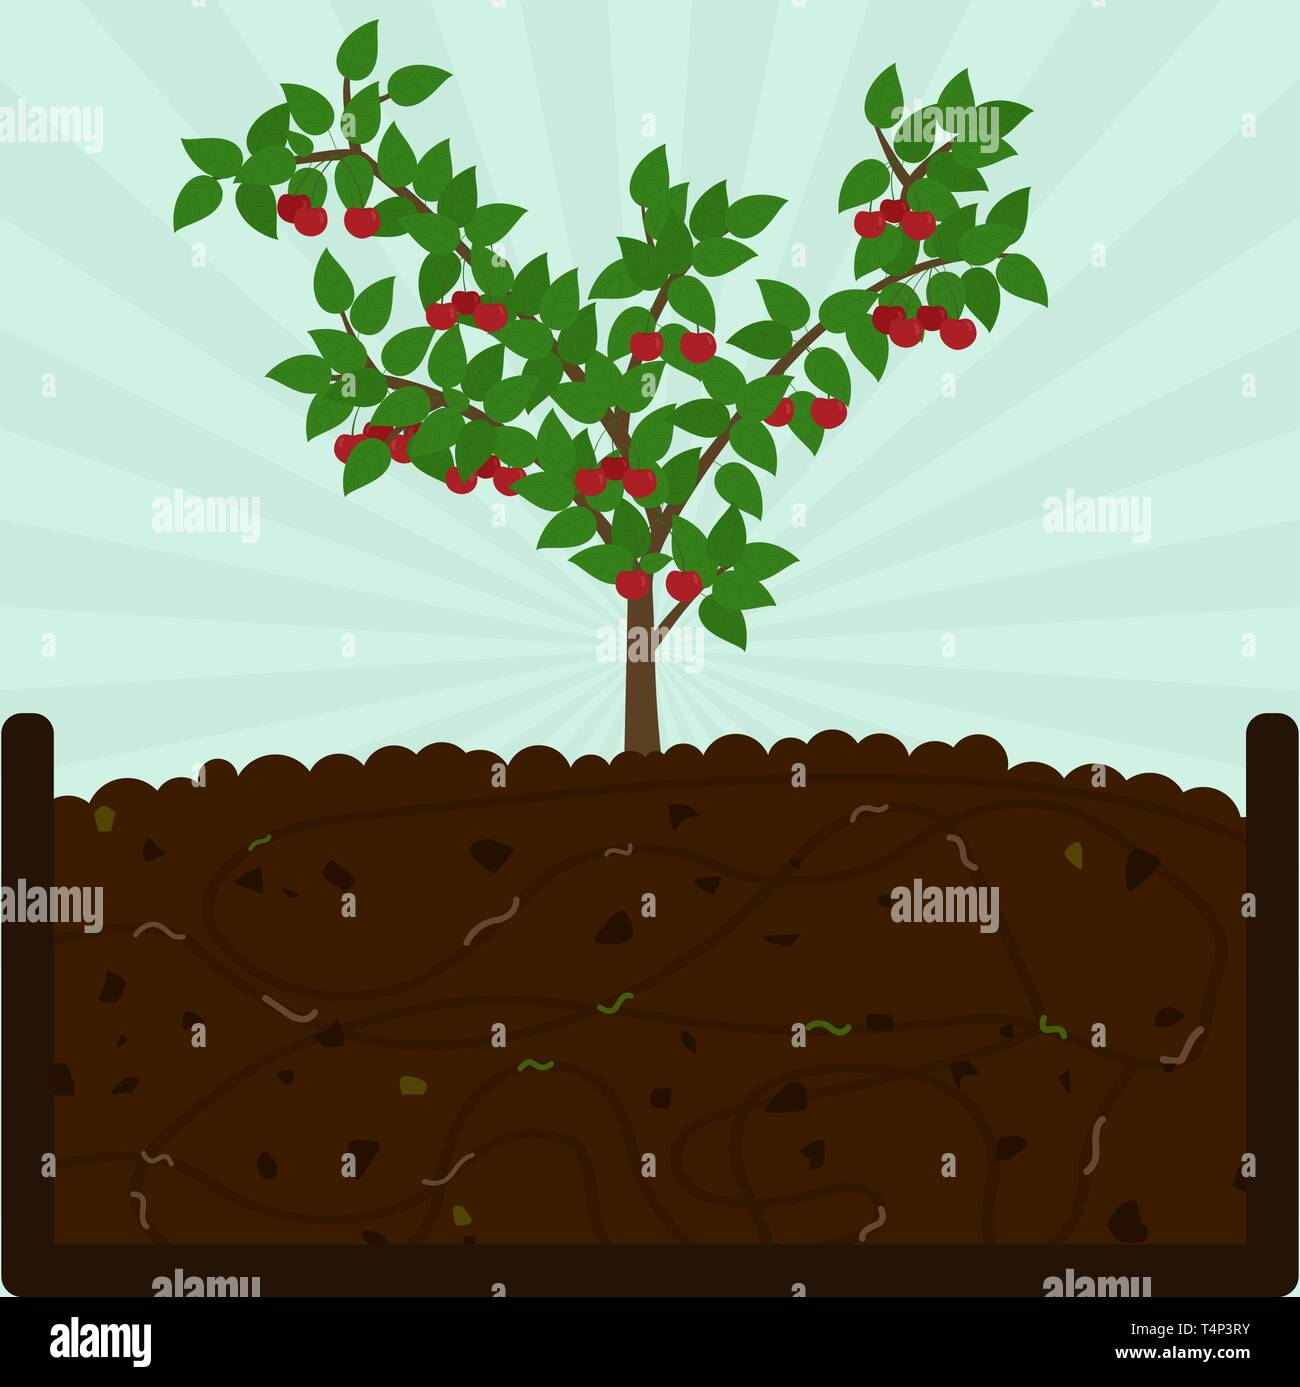 Planting cherry fruit. Composting process with organic matter, microorganisms and earthworms. Fallen leaves on the ground. - Stock Vector